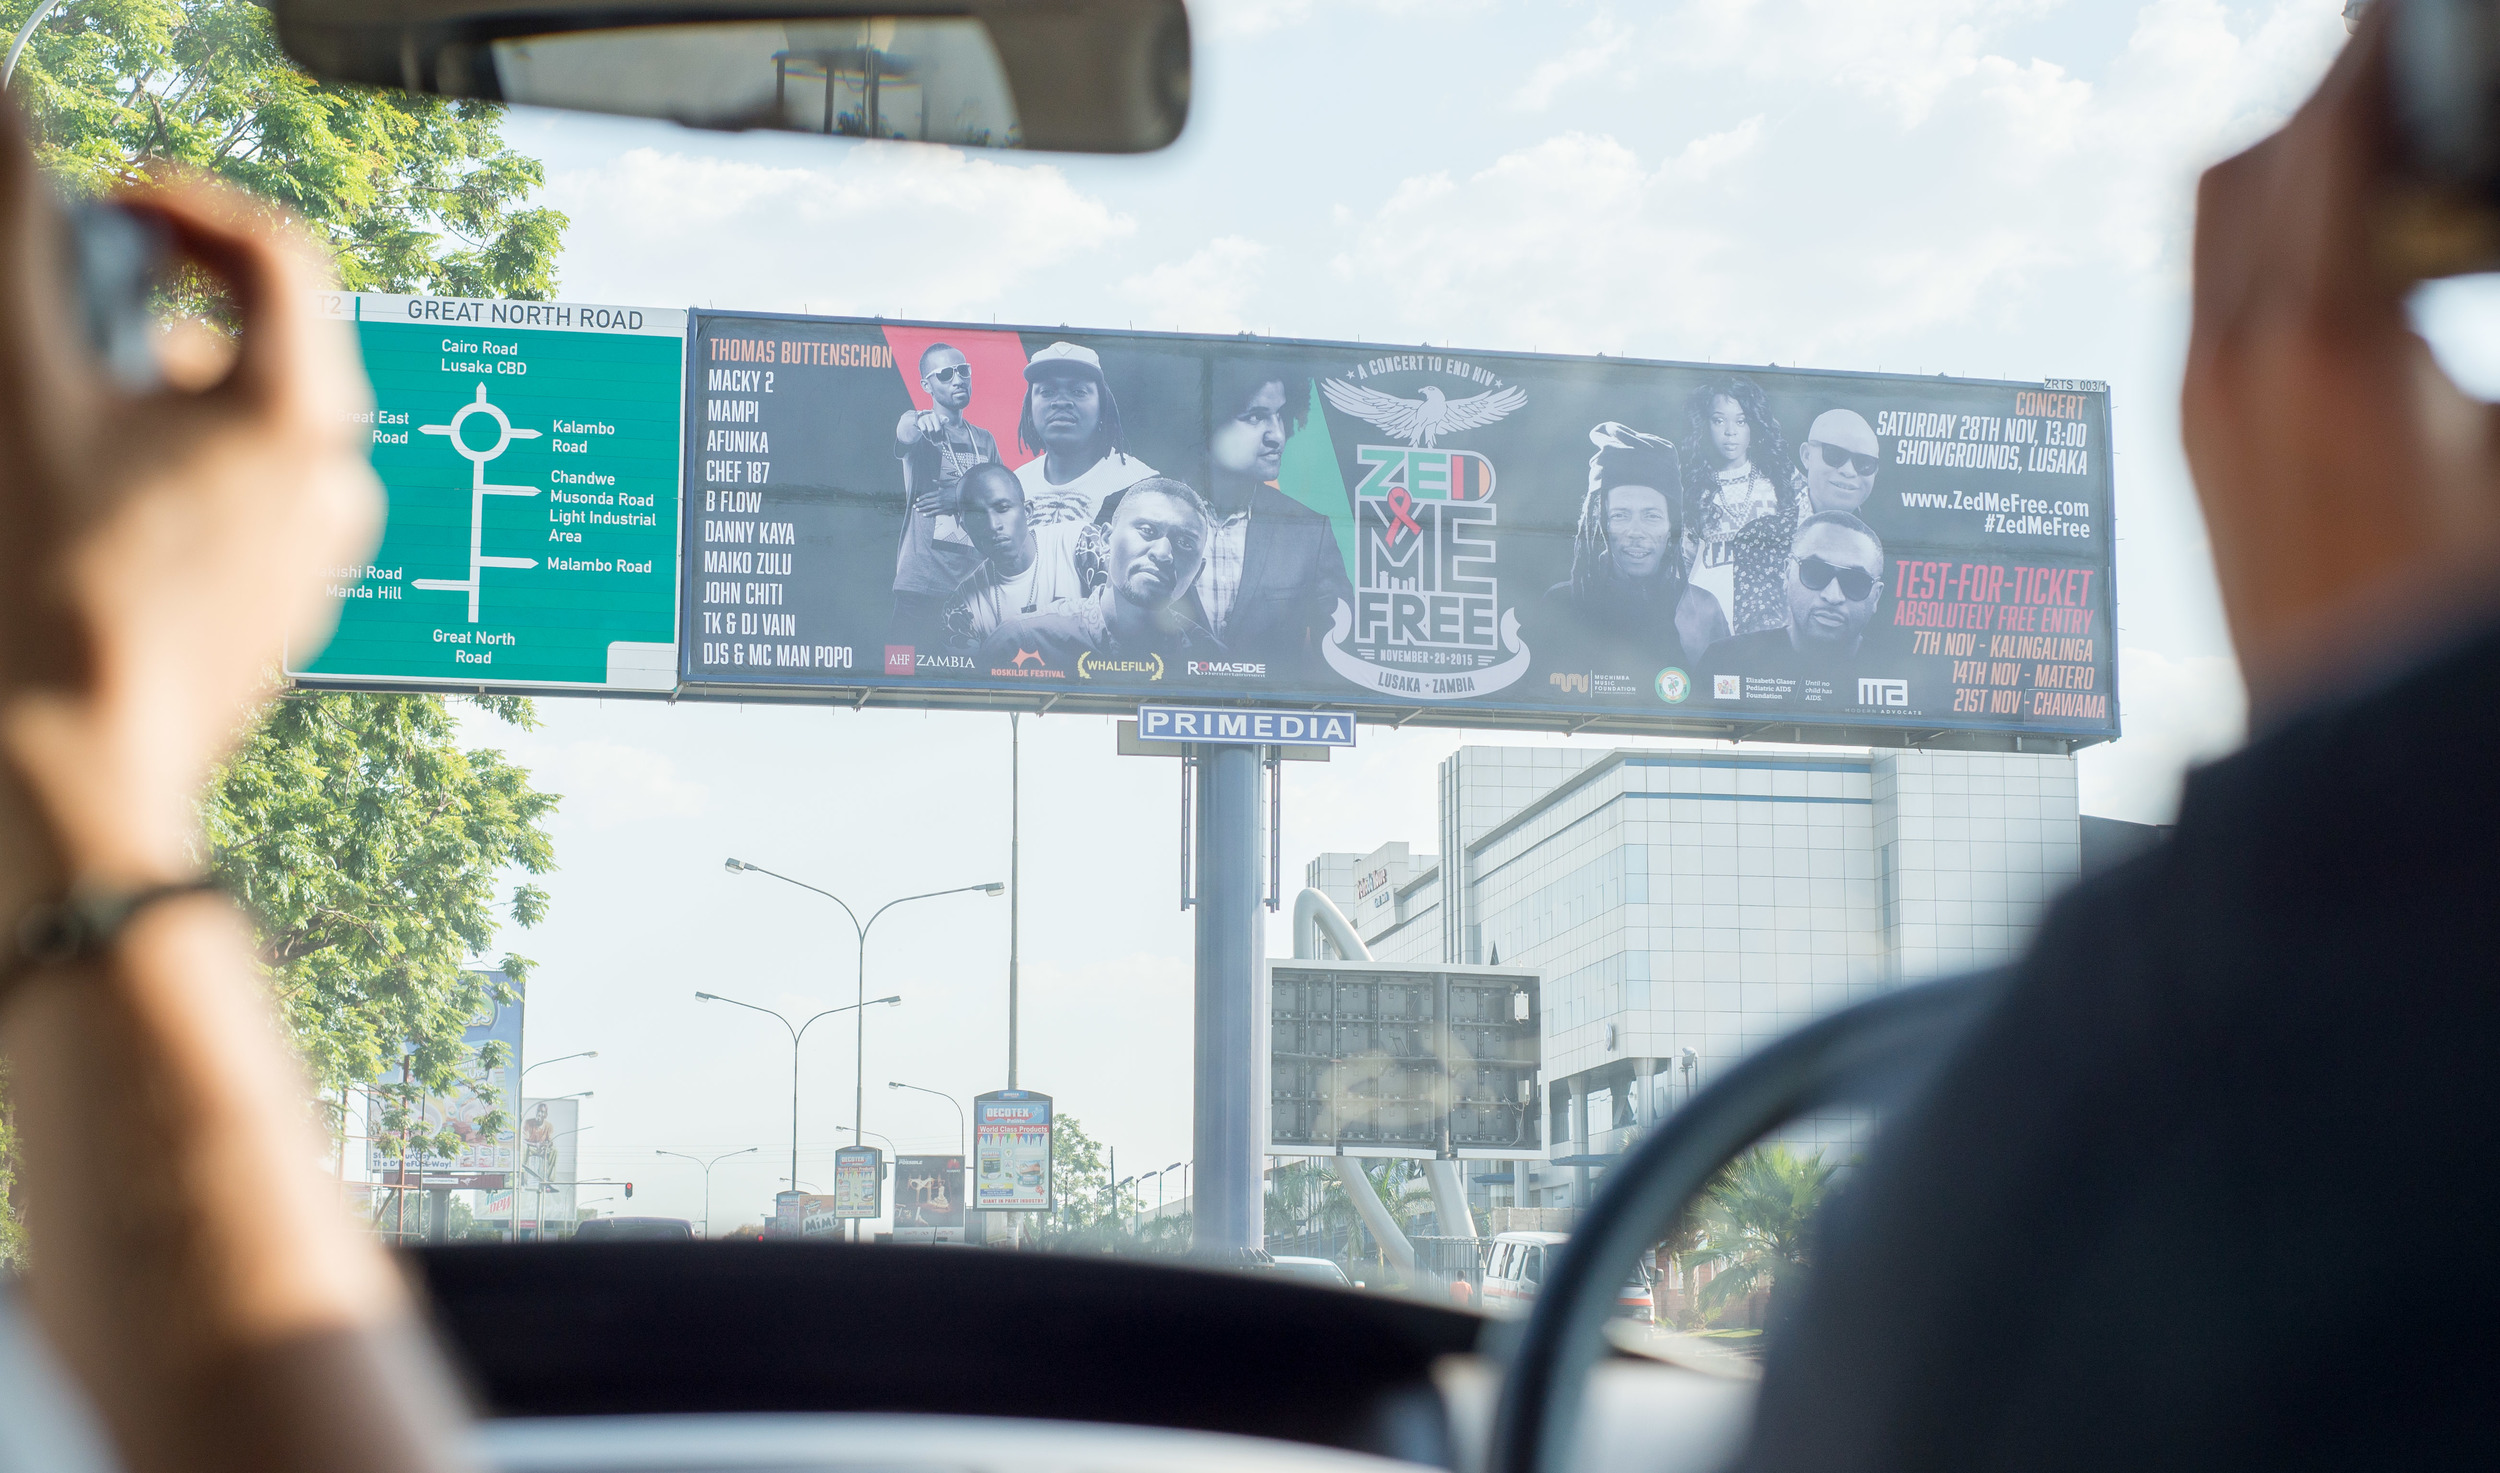 My portraits of the featured musicians were key elements for billboards utilized throughout Lusaka.